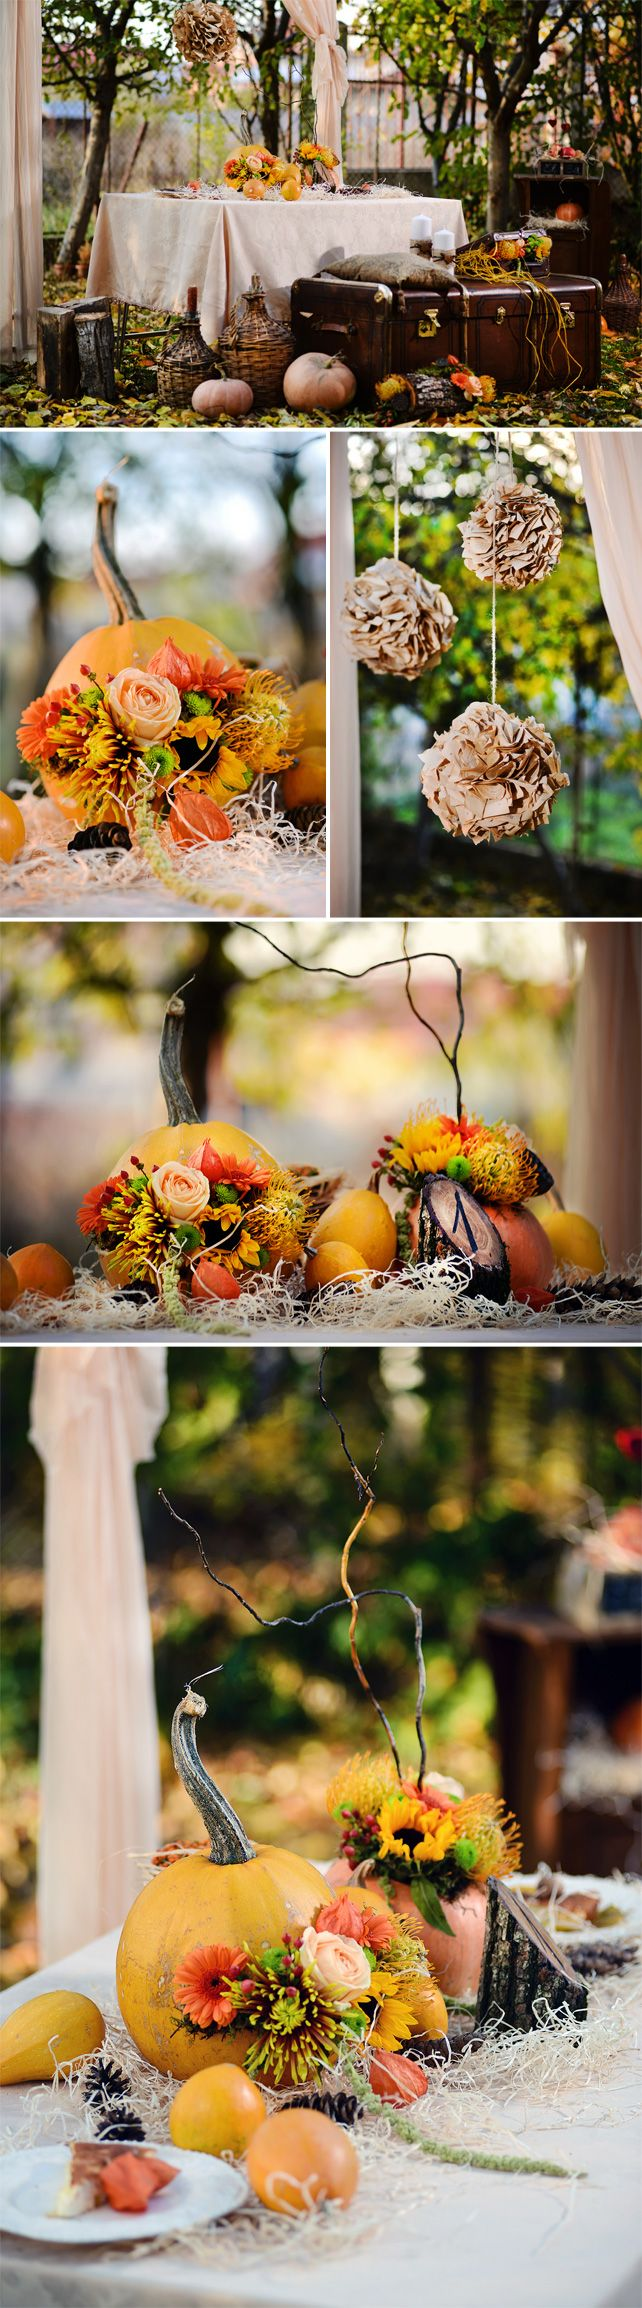 Autumn decoration ;;) home and design ❤